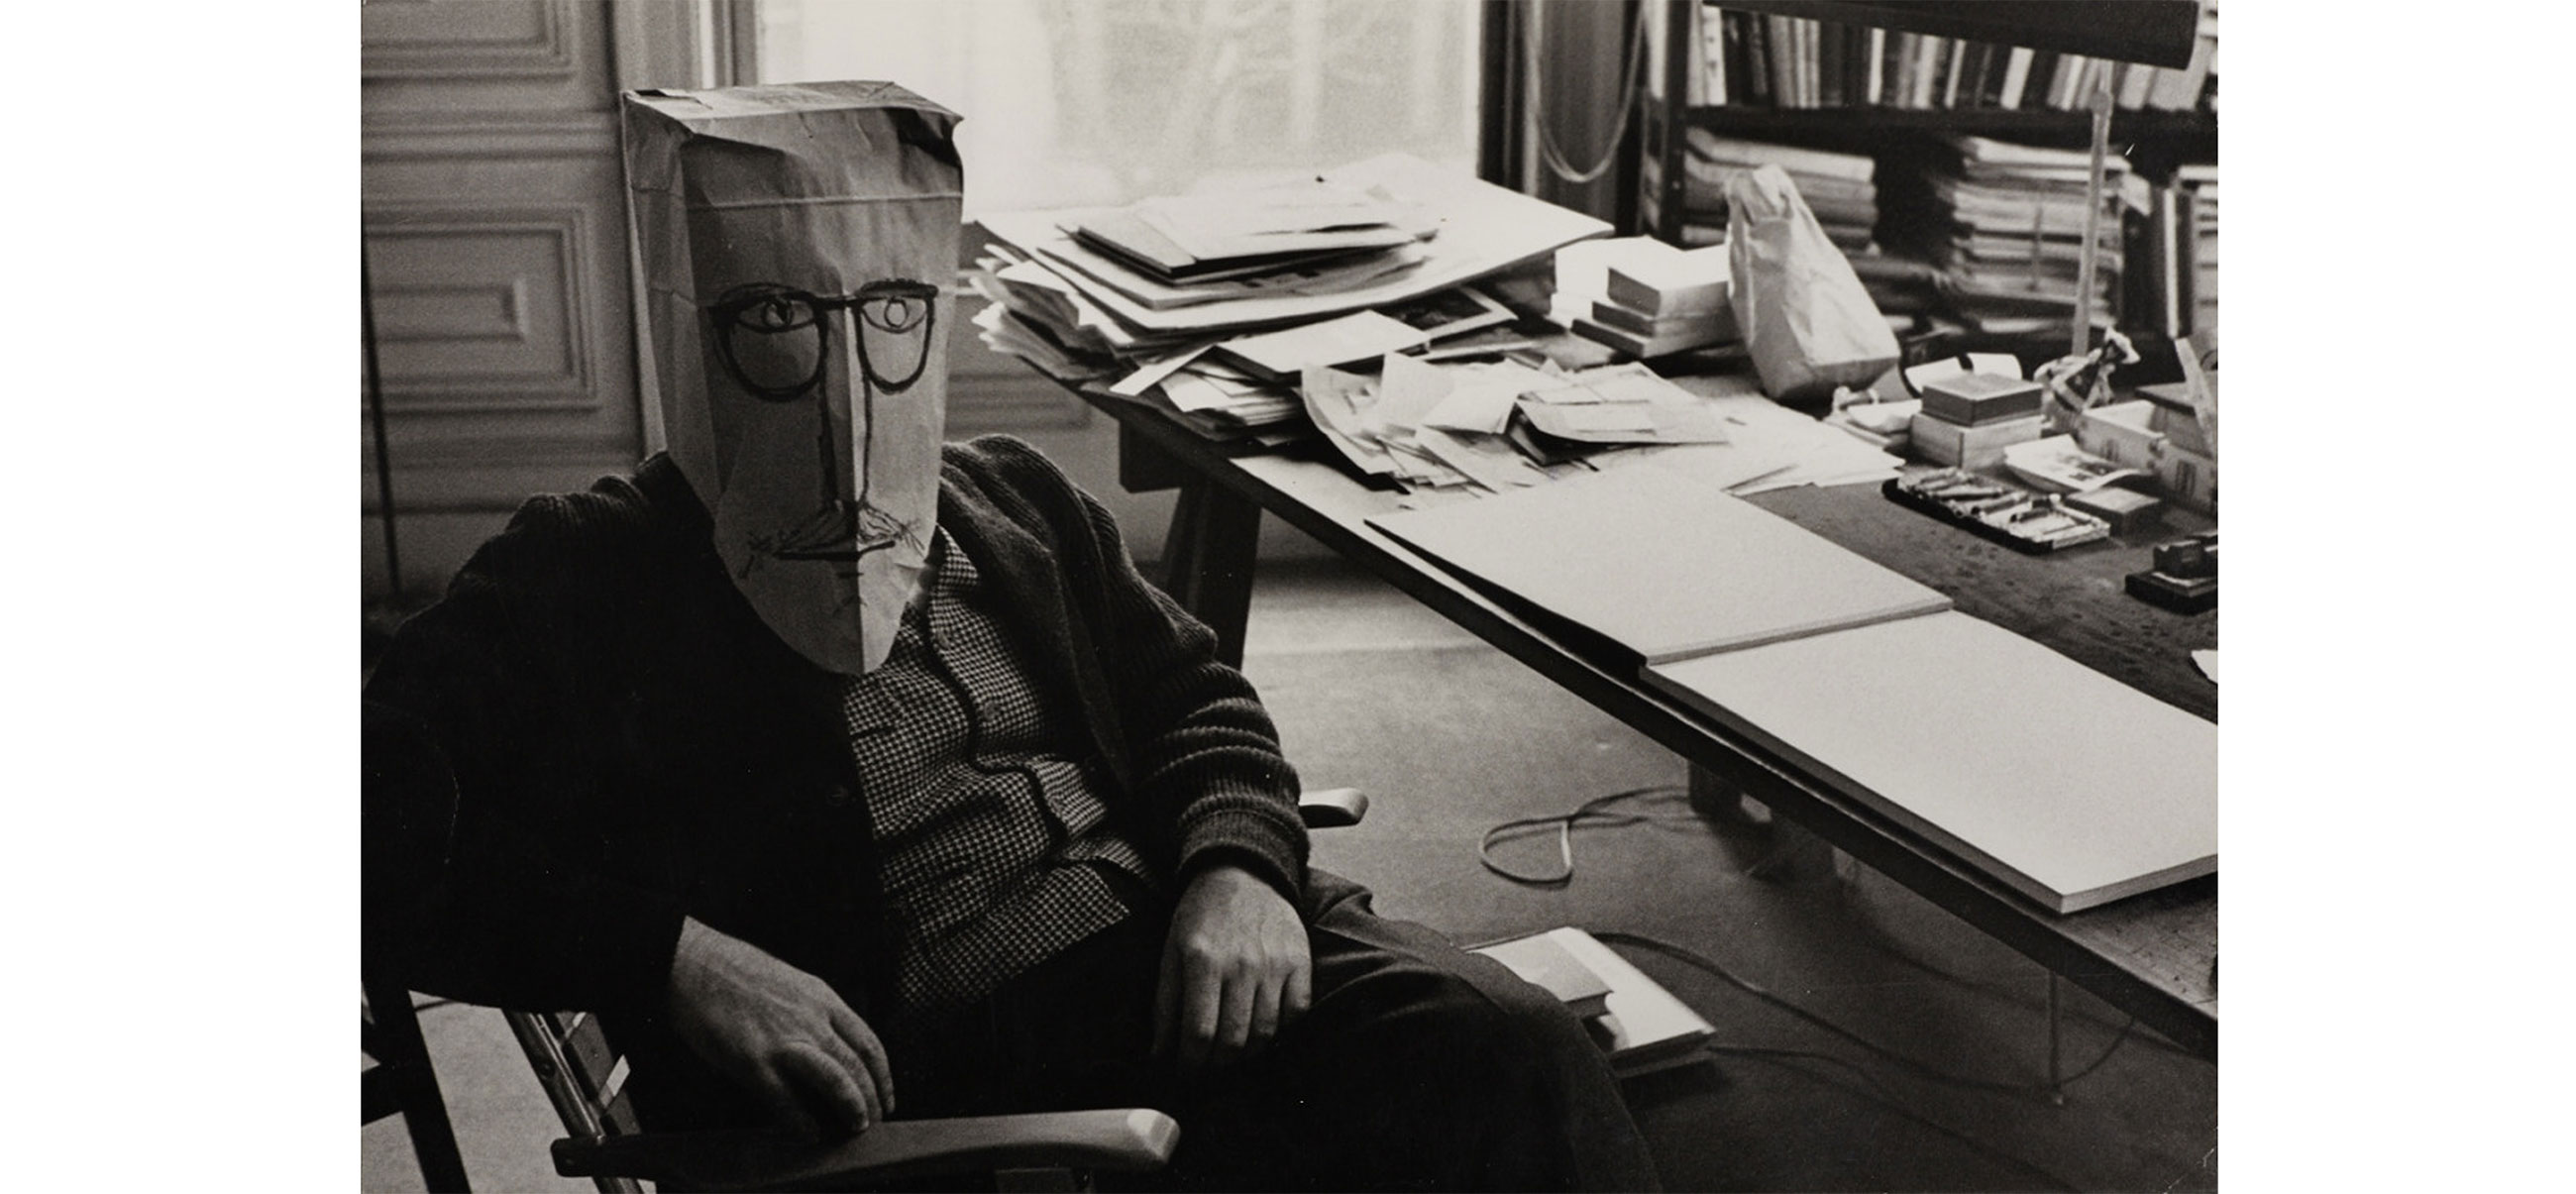 saul-steinberg-masques-index-grafik-02